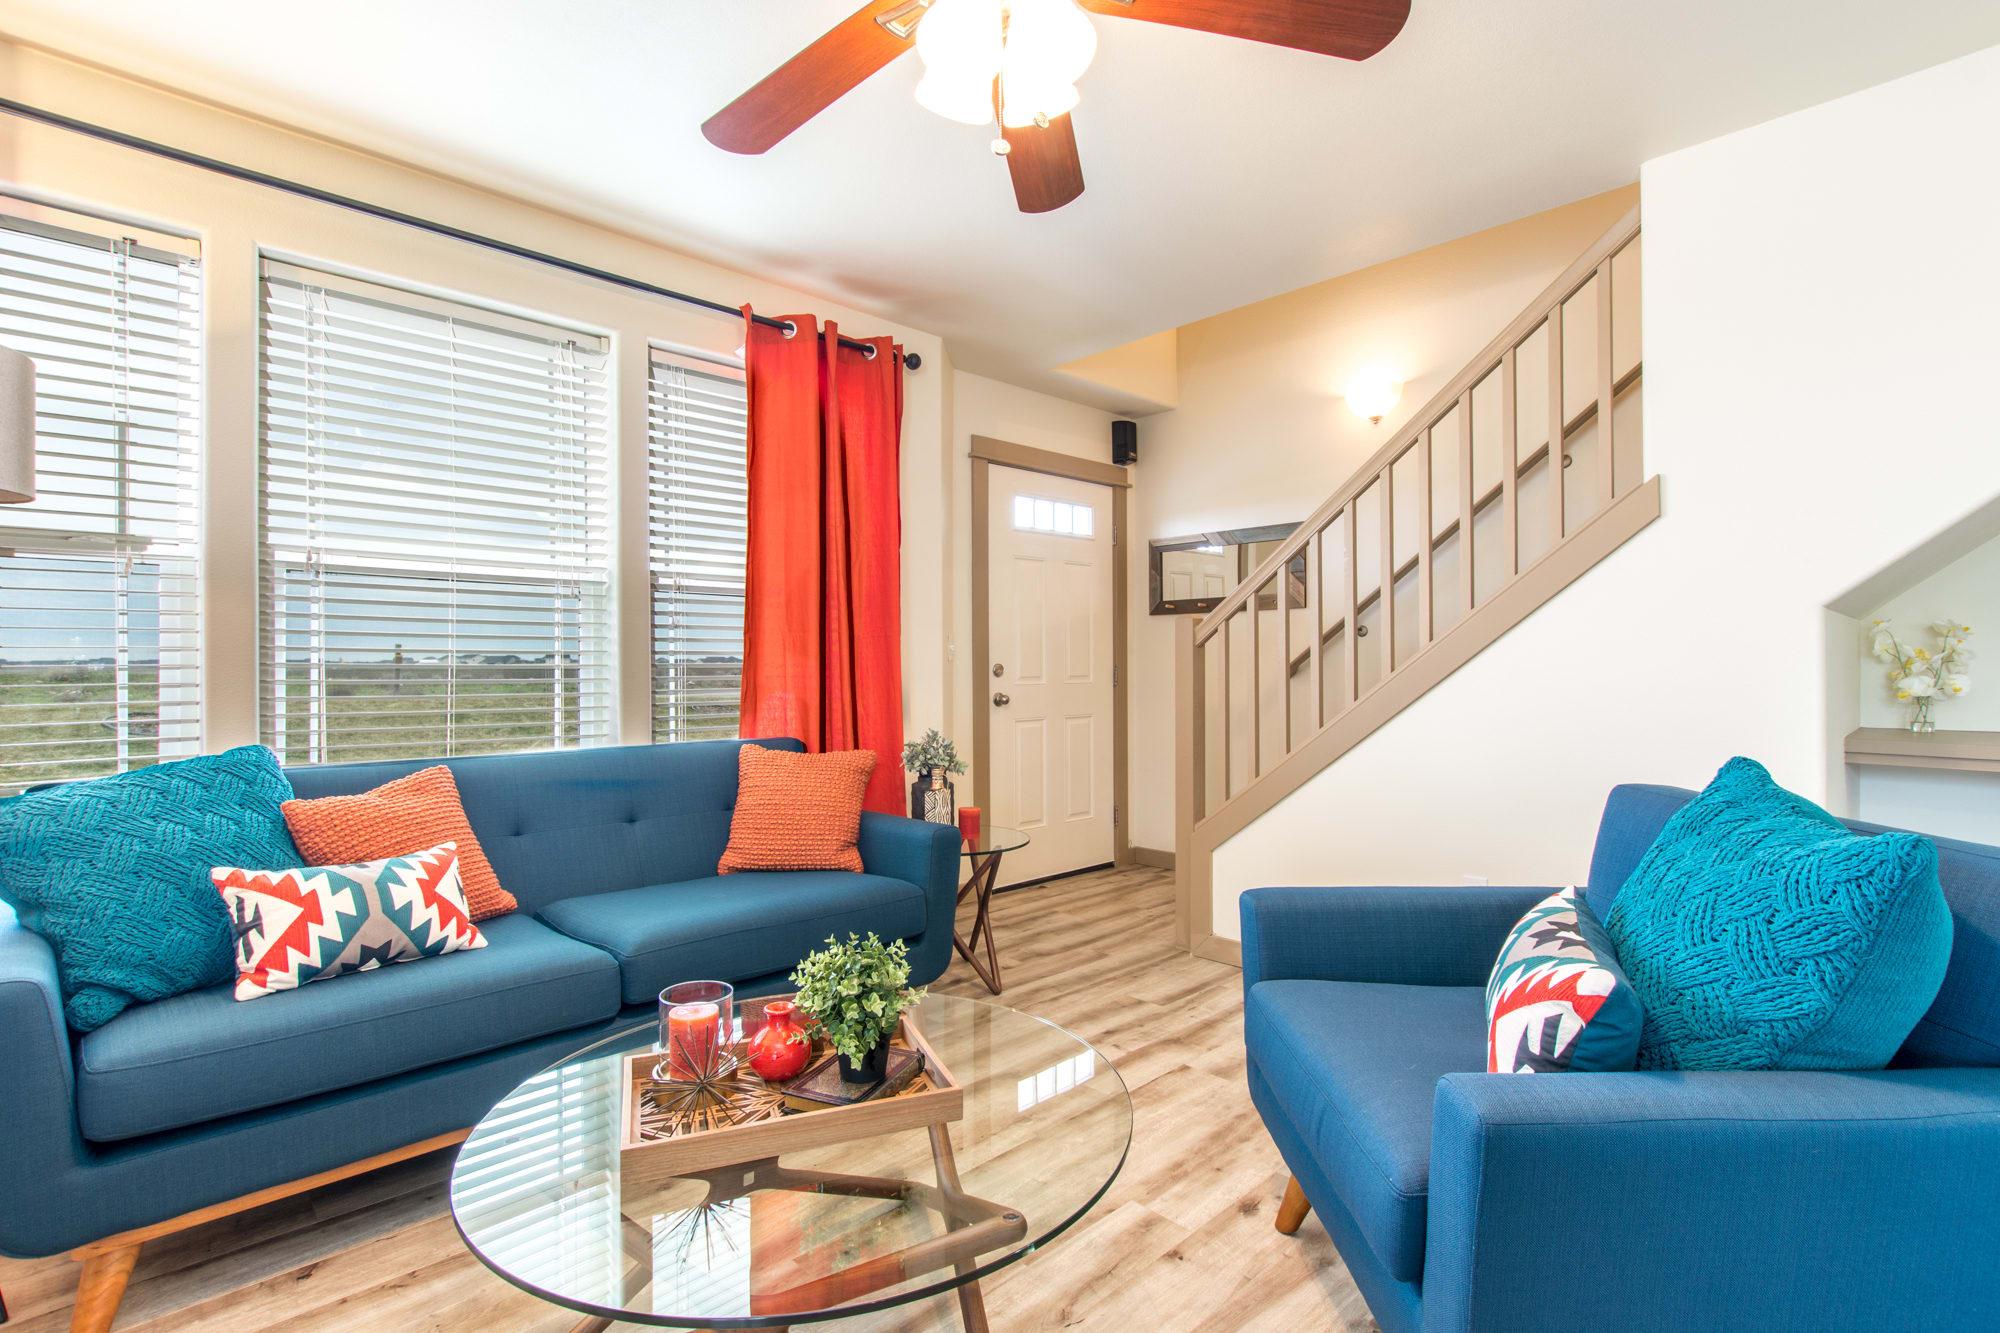 Be dazzled at unspeakable beauty in luxury apartments in Pasco, WA